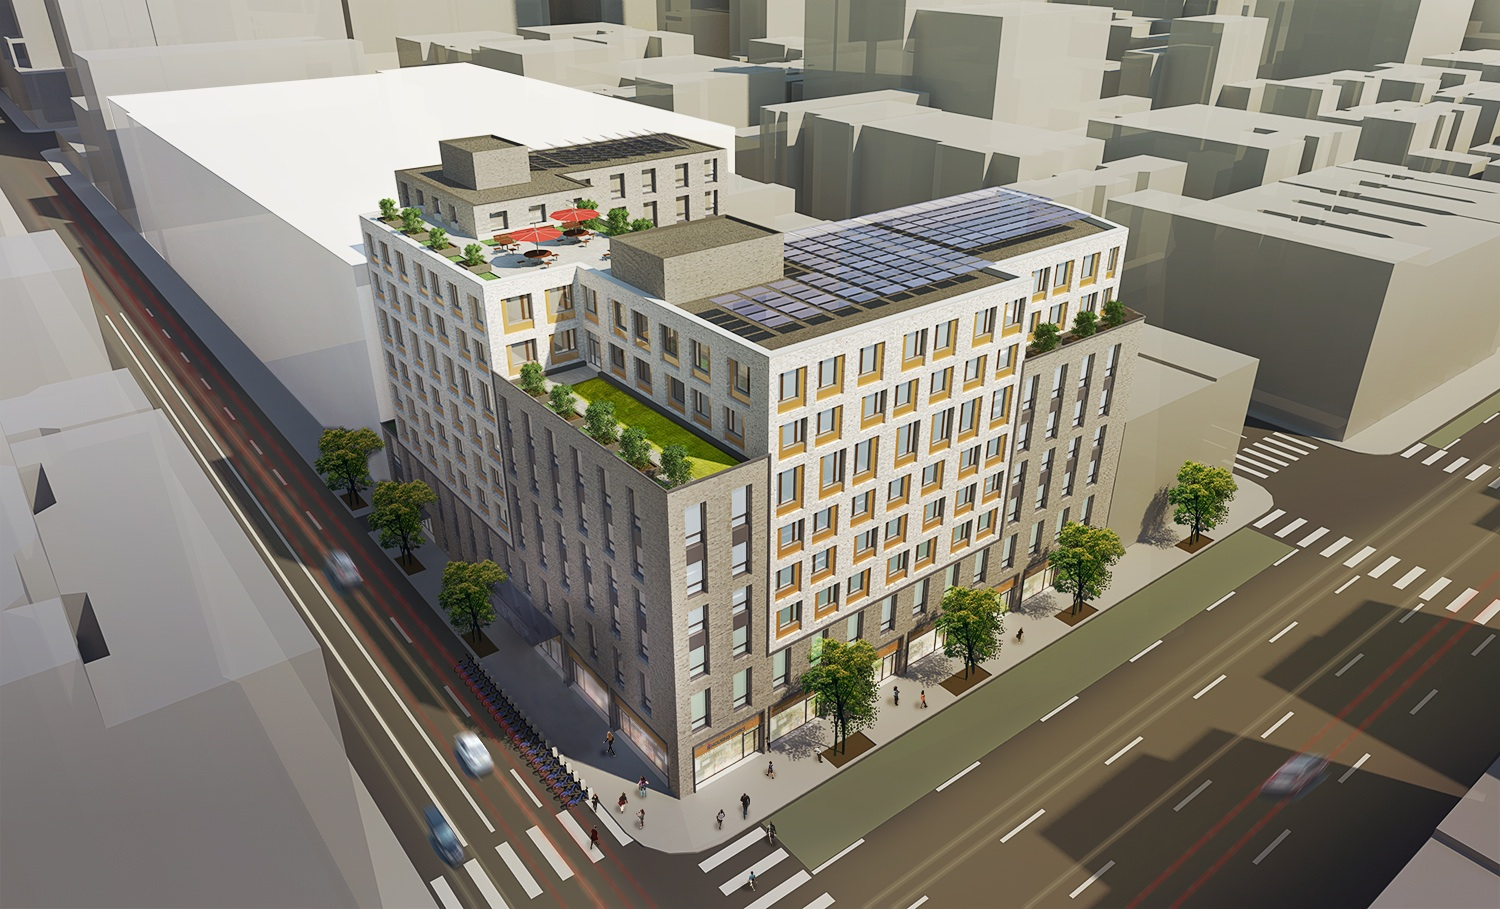 A rendering of a multifamily apartment building in New York City.